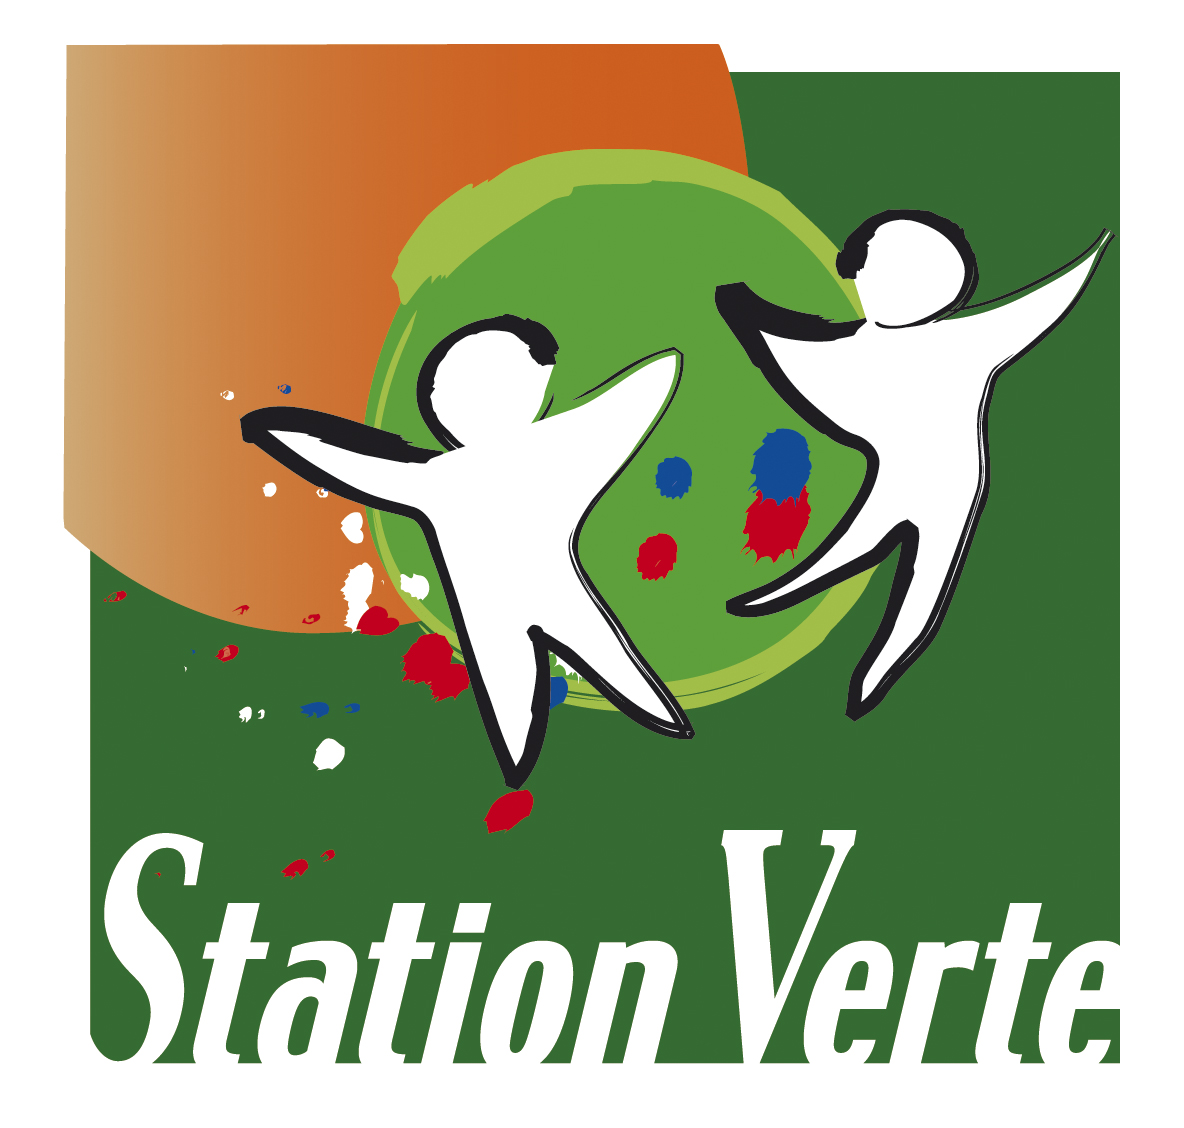 Station verte